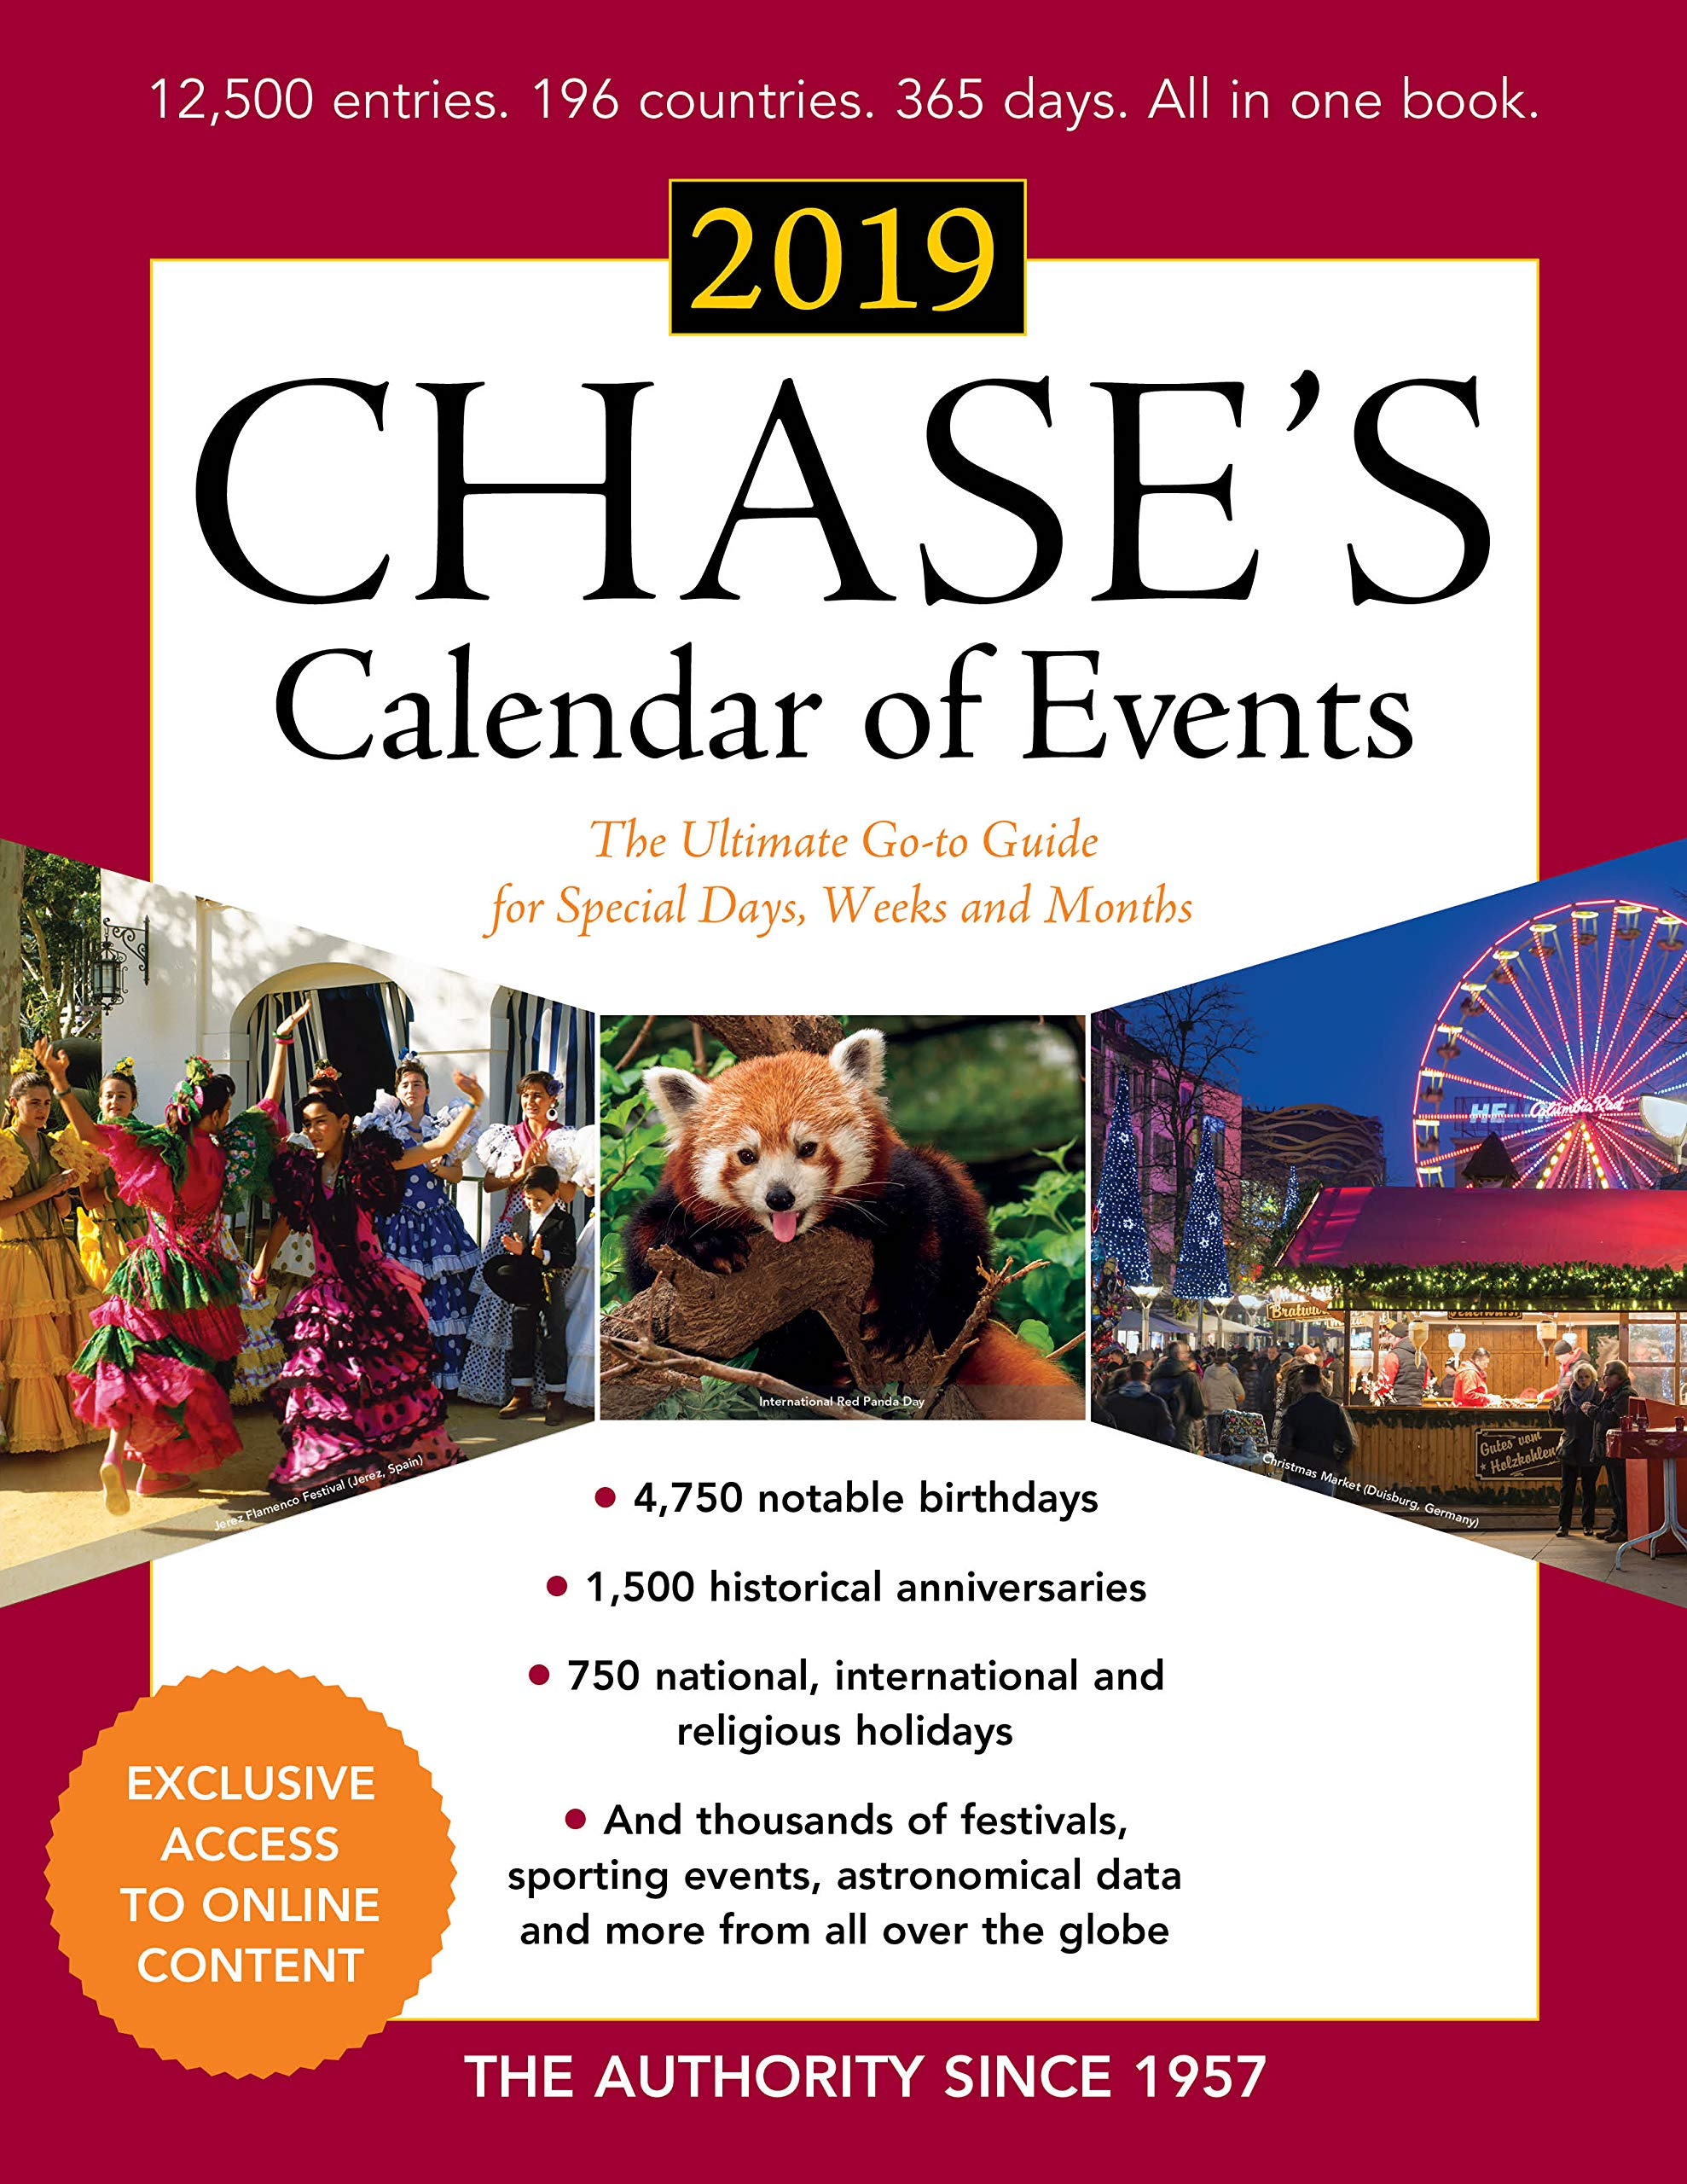 How Many Weeks To Christmas 2019.Buy Chase S Calendar Of Events 2019 The Ultimate Go To